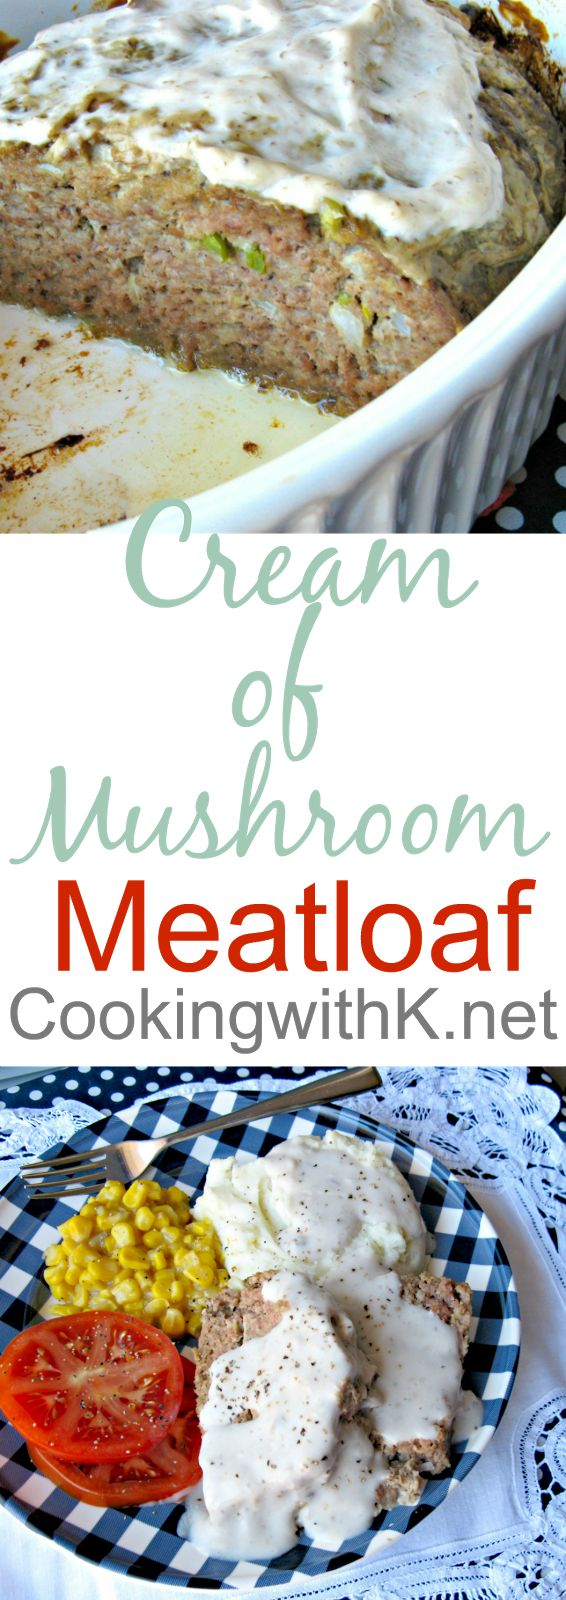 Cream of Mushroom Meatloaf is made with simple ingredients, cream of mushroom soup, Lipton Onion Soup mix, oatmeal and lean ground hamburger. Cook in an iron skillet and it will give the most wonderful juices to make a creamy gravy!